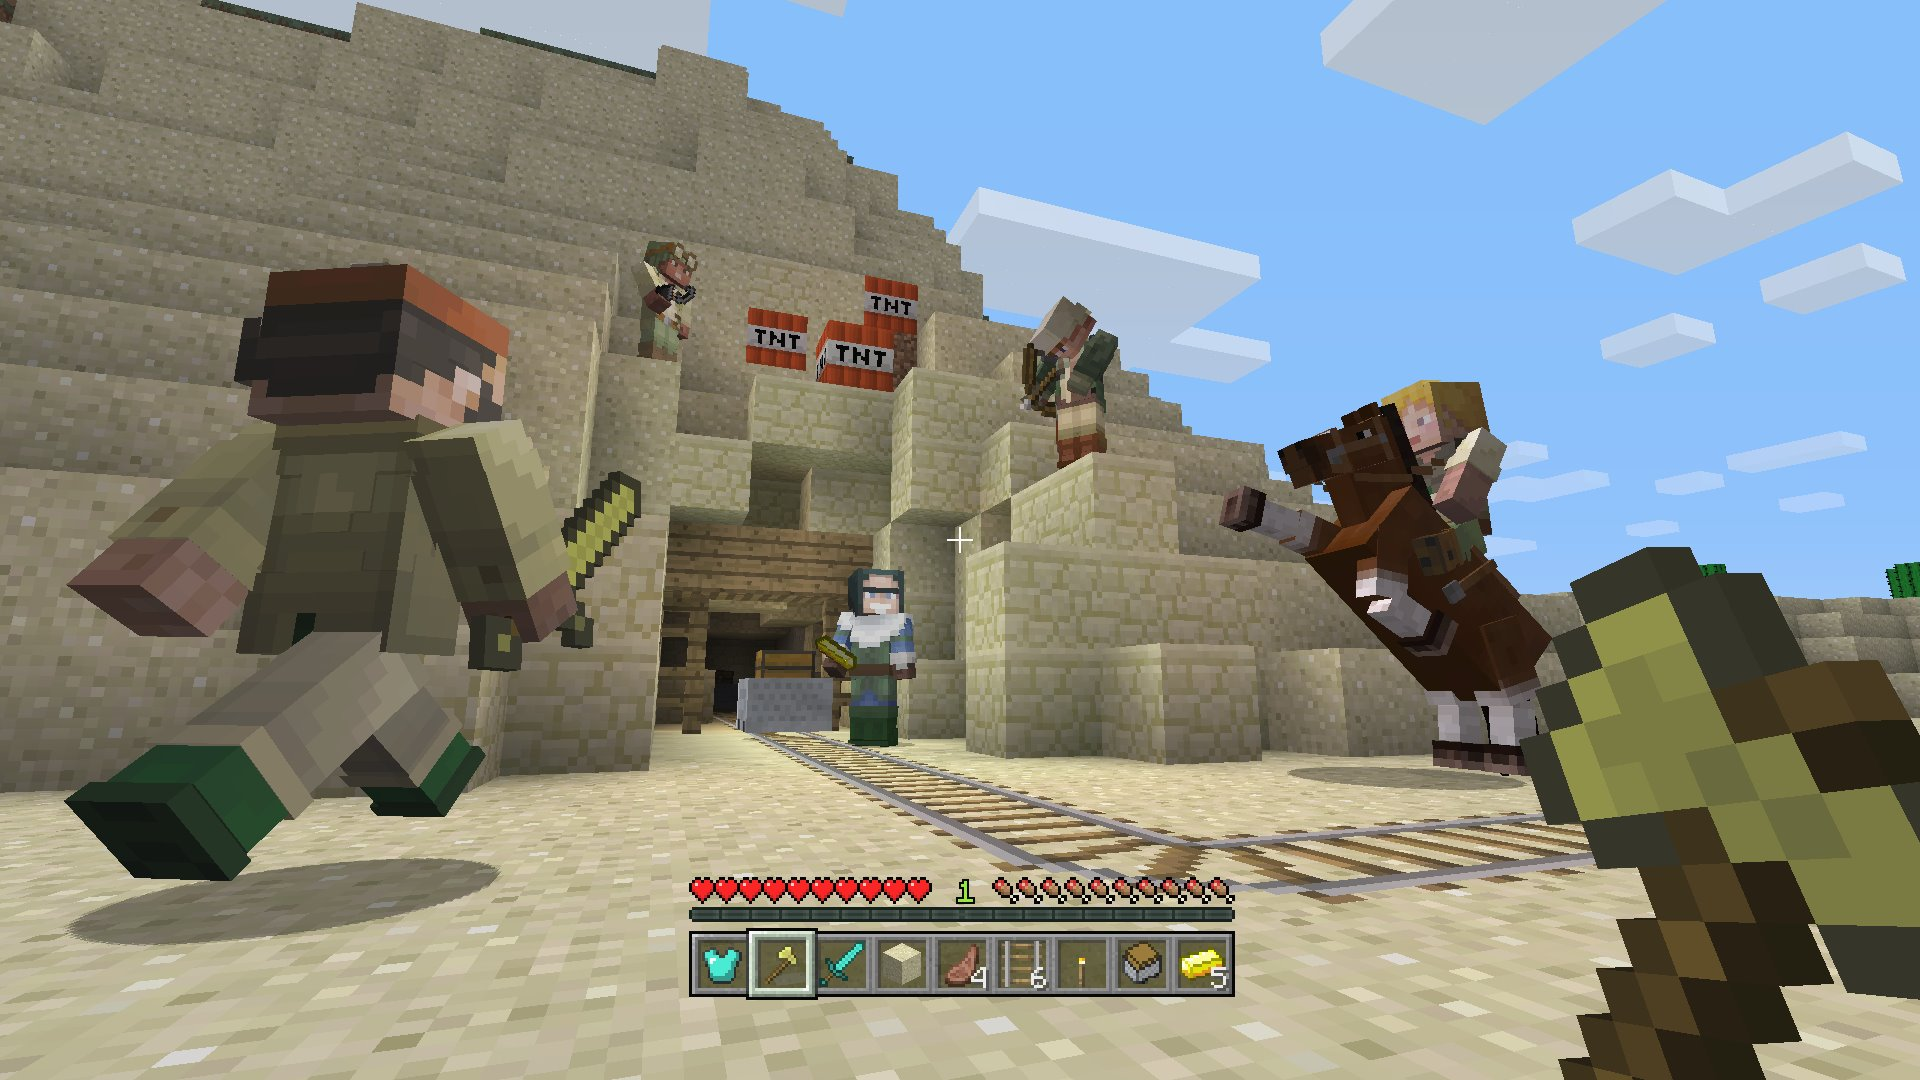 Minecraft Builders Pack On PS Official PlayStationStore US - Minecraft spielen star wars